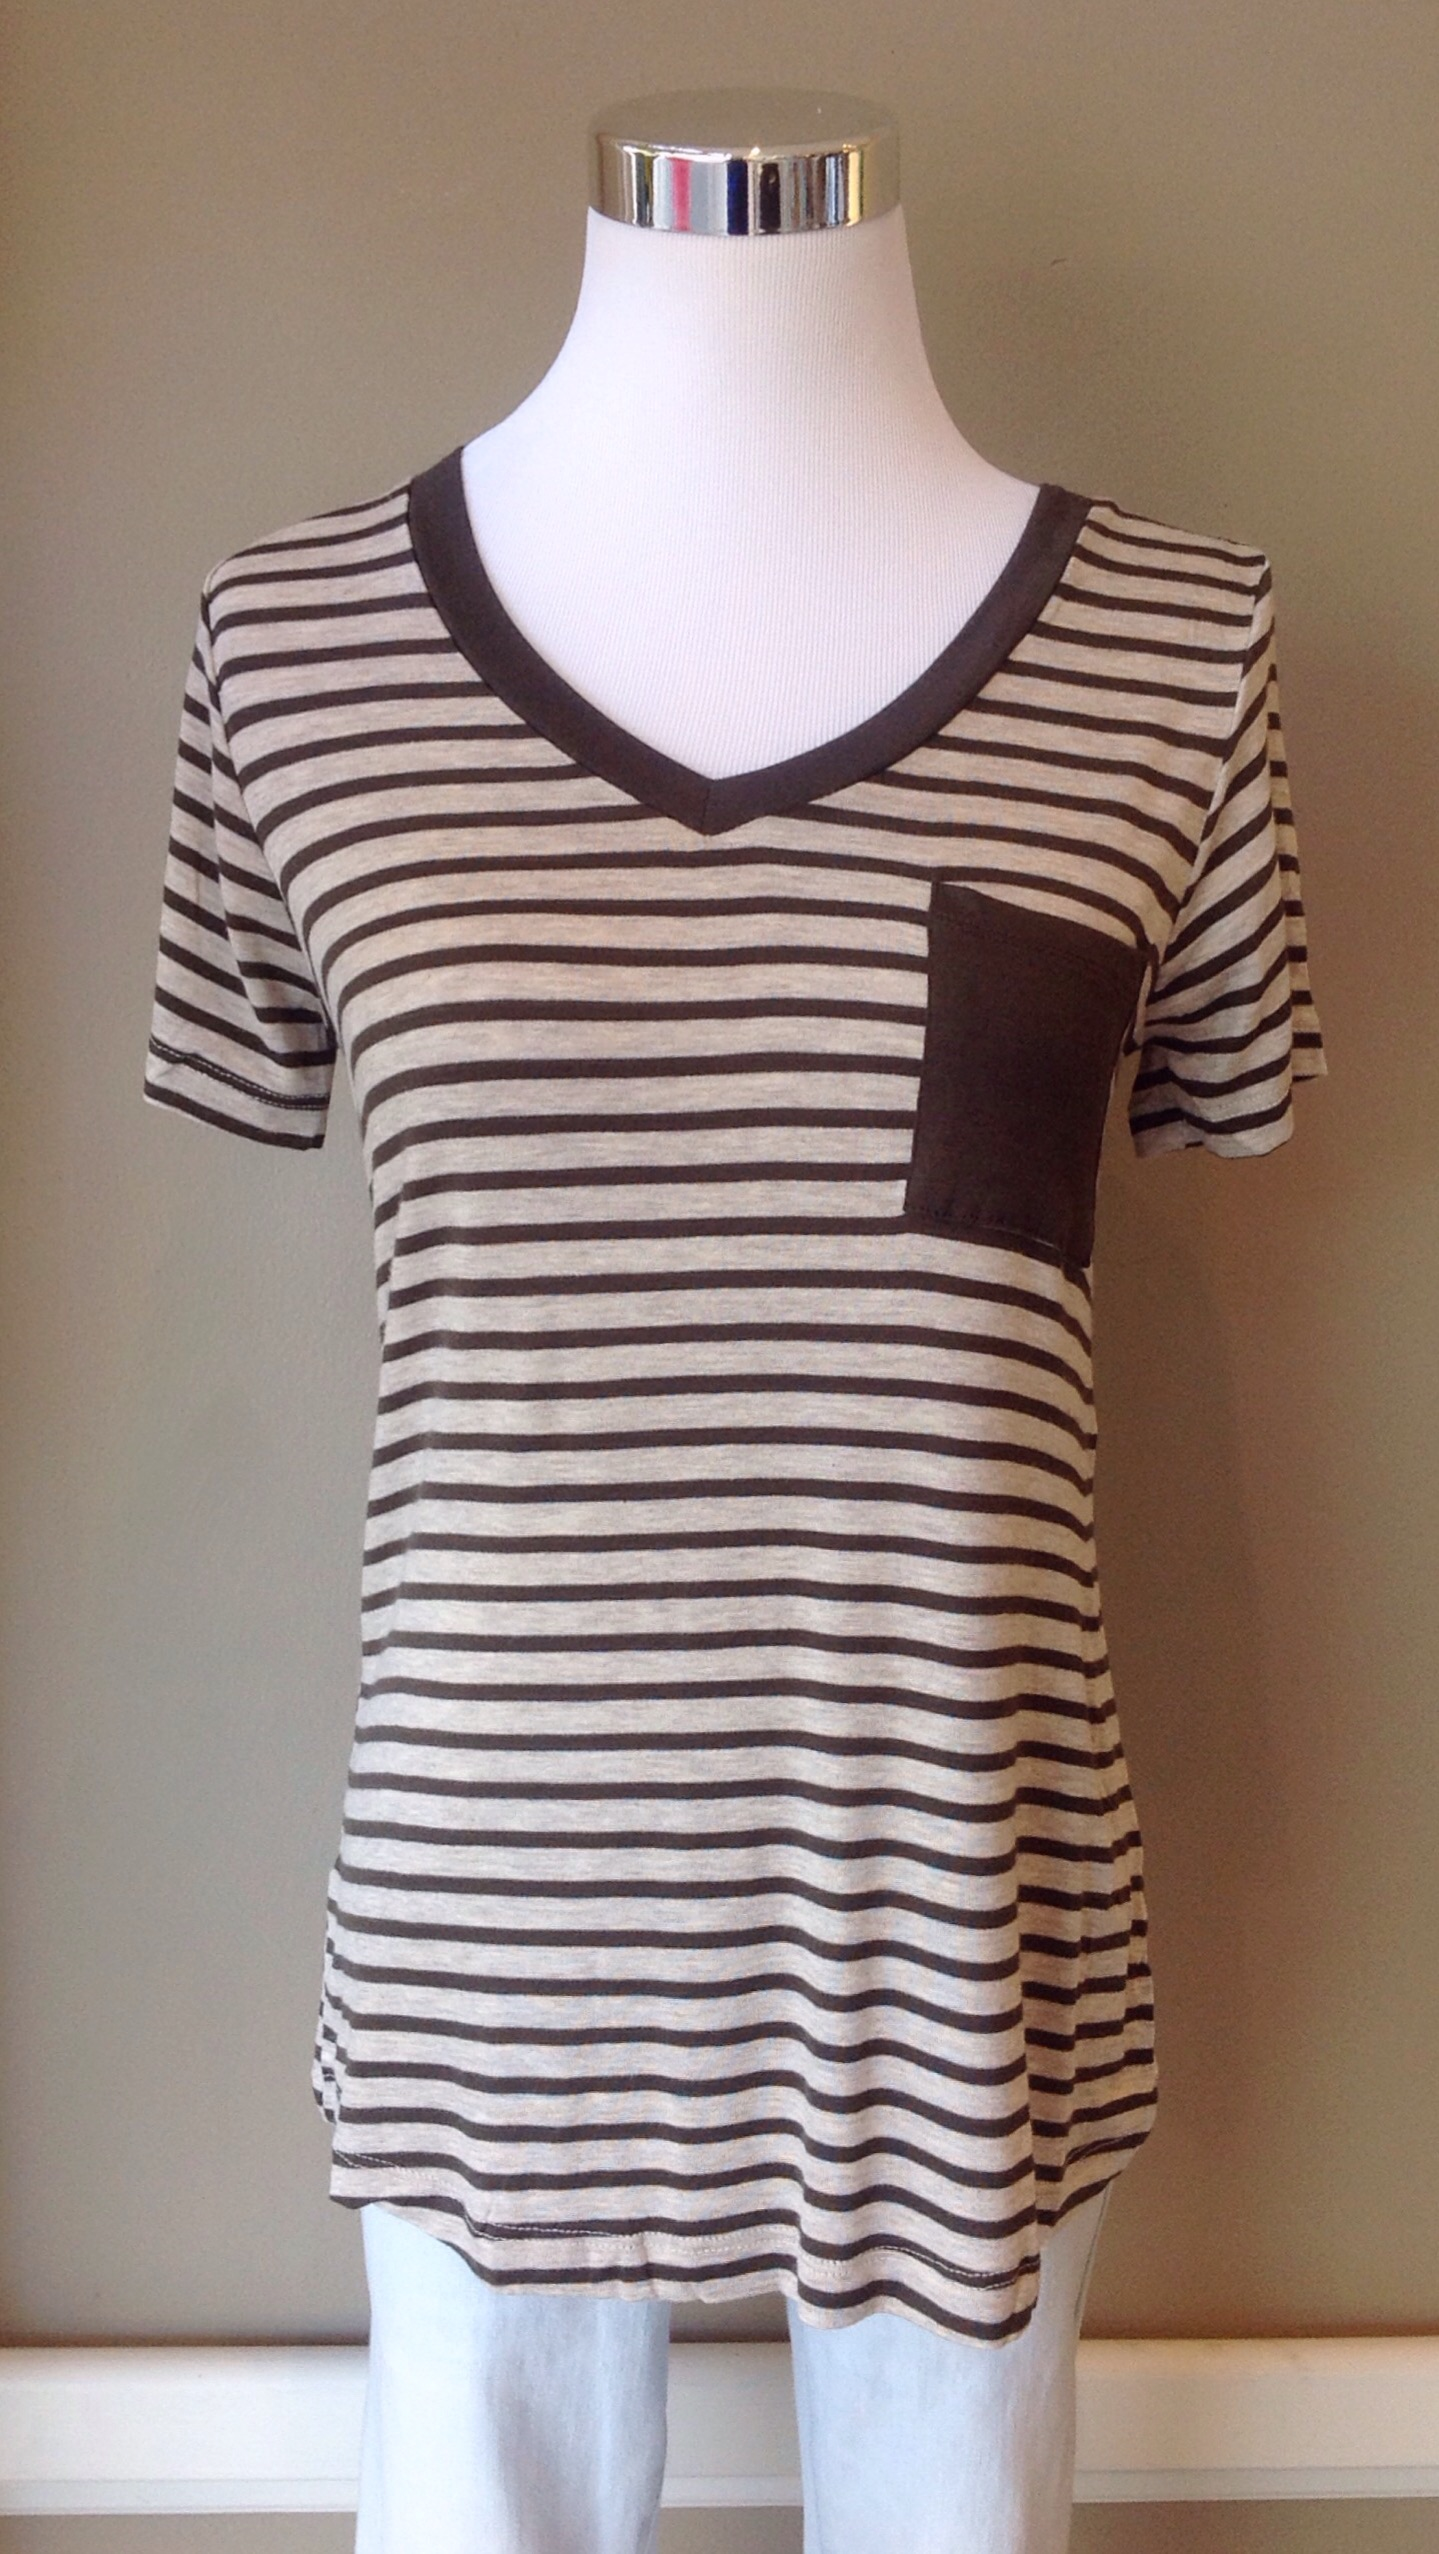 Soft knit tee in olive/oatmeal stripe, $24